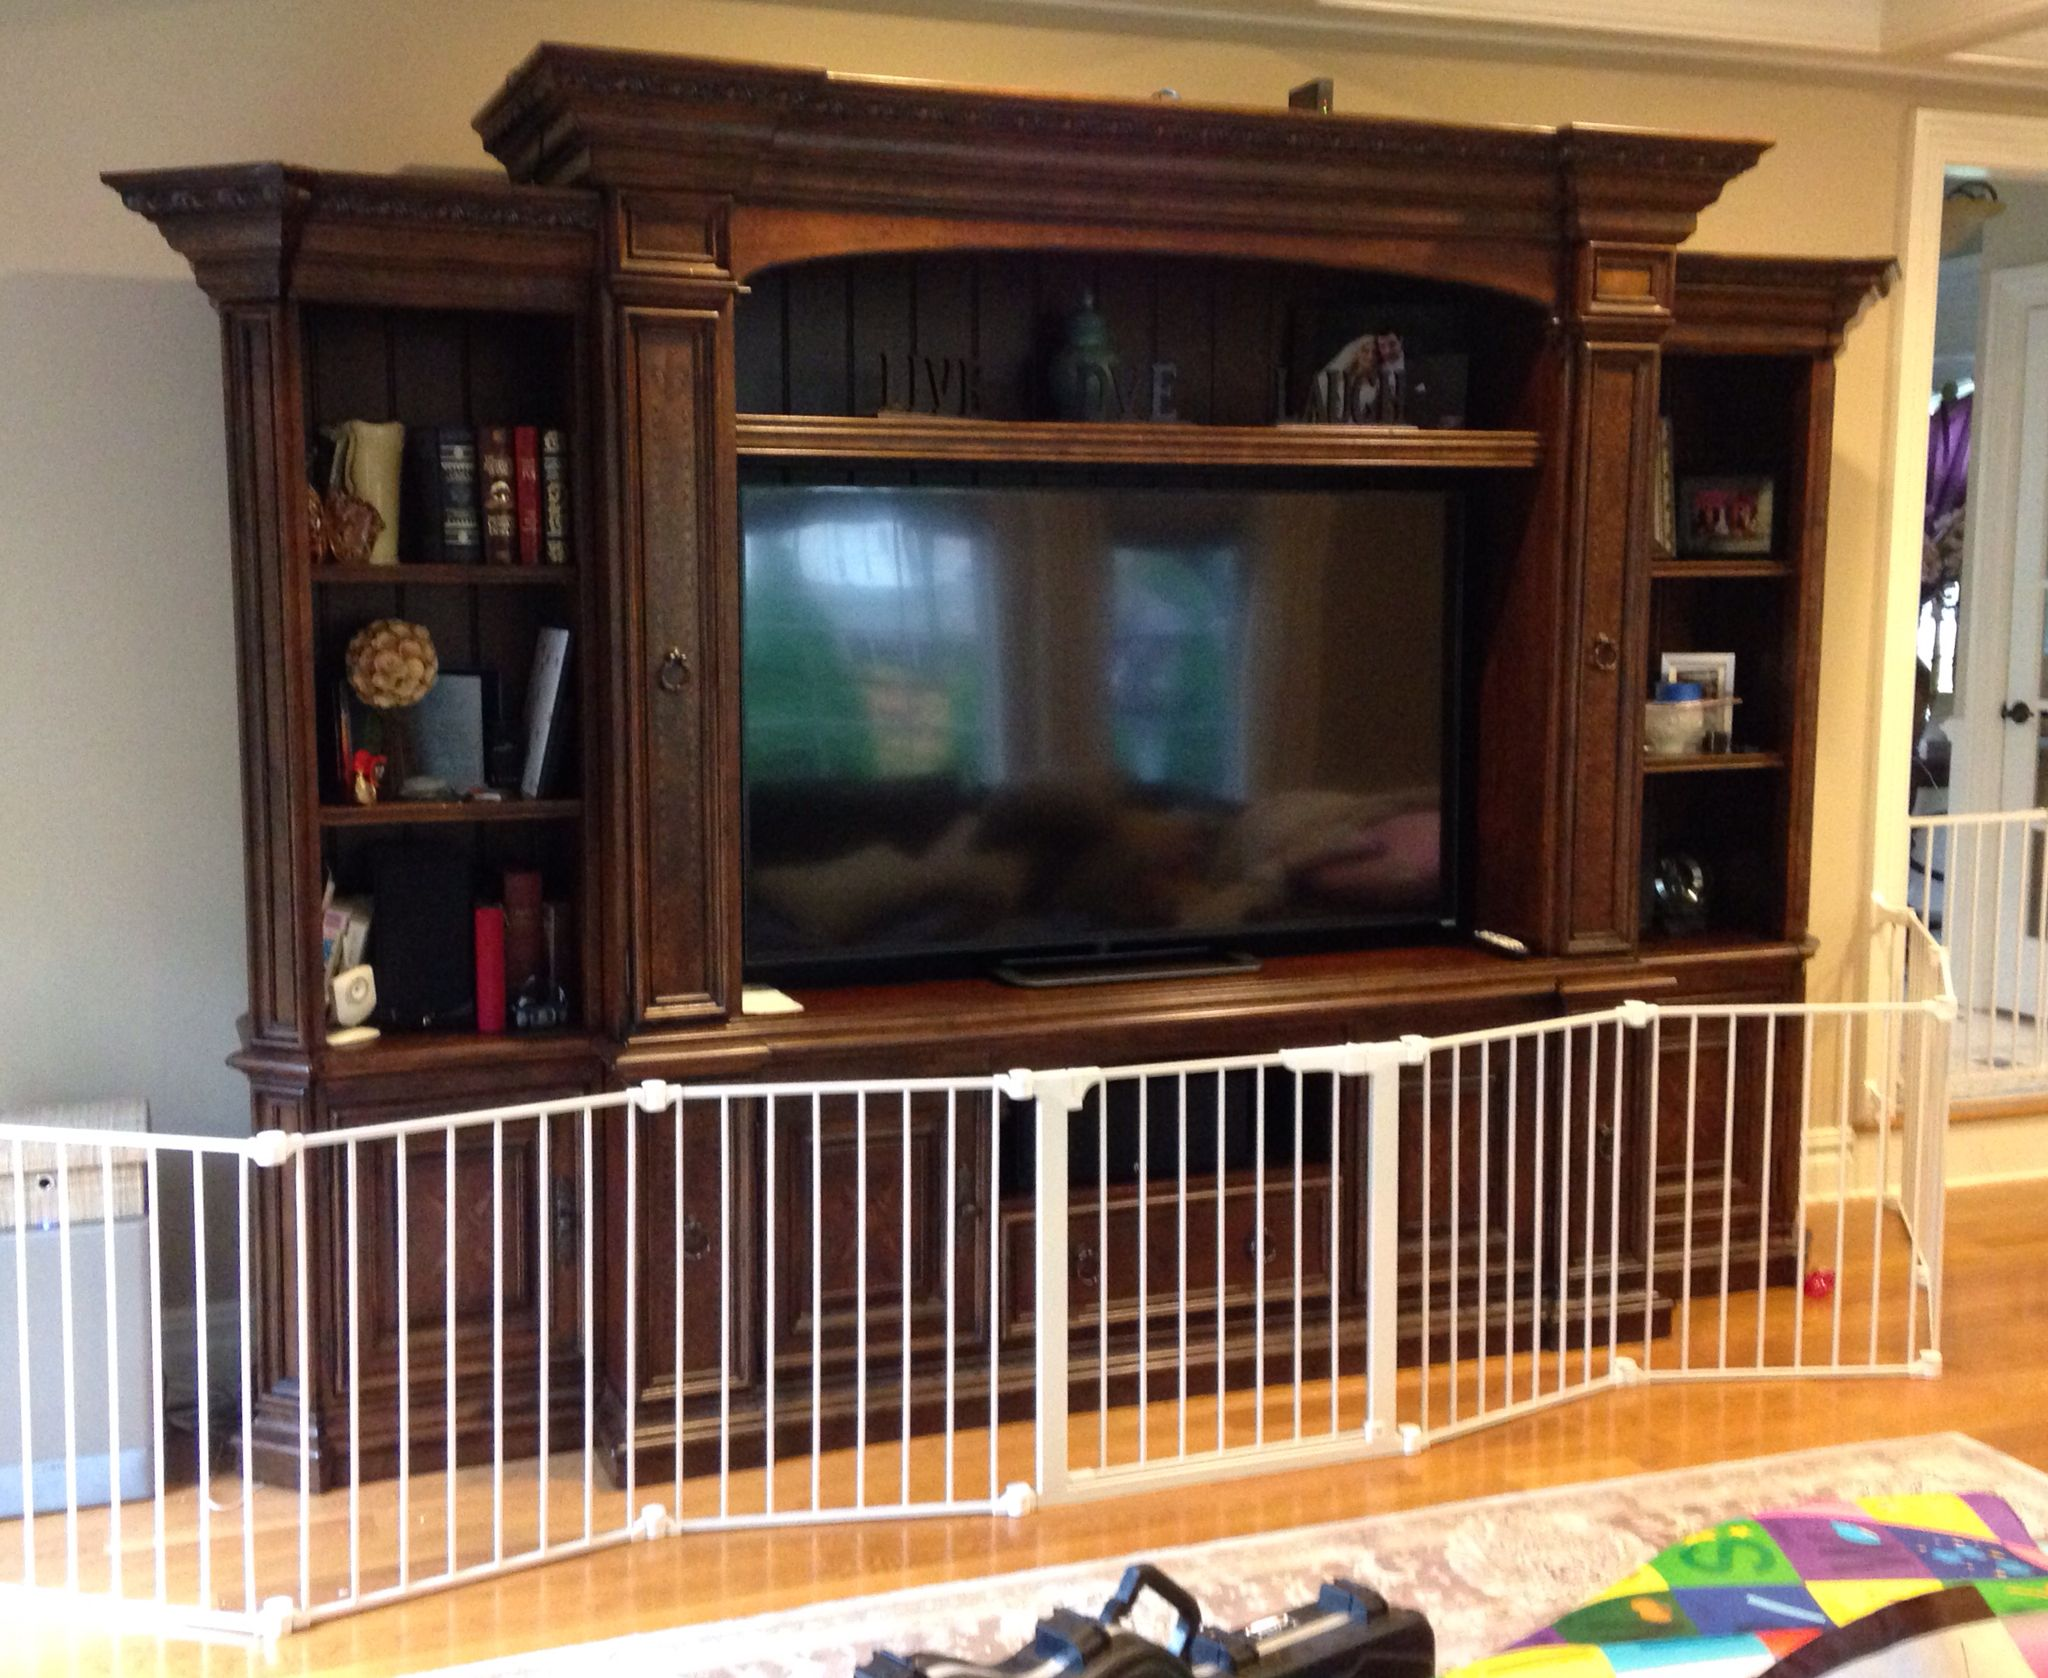 Safety Gate in front of the Entertainment Center. This prevents little one